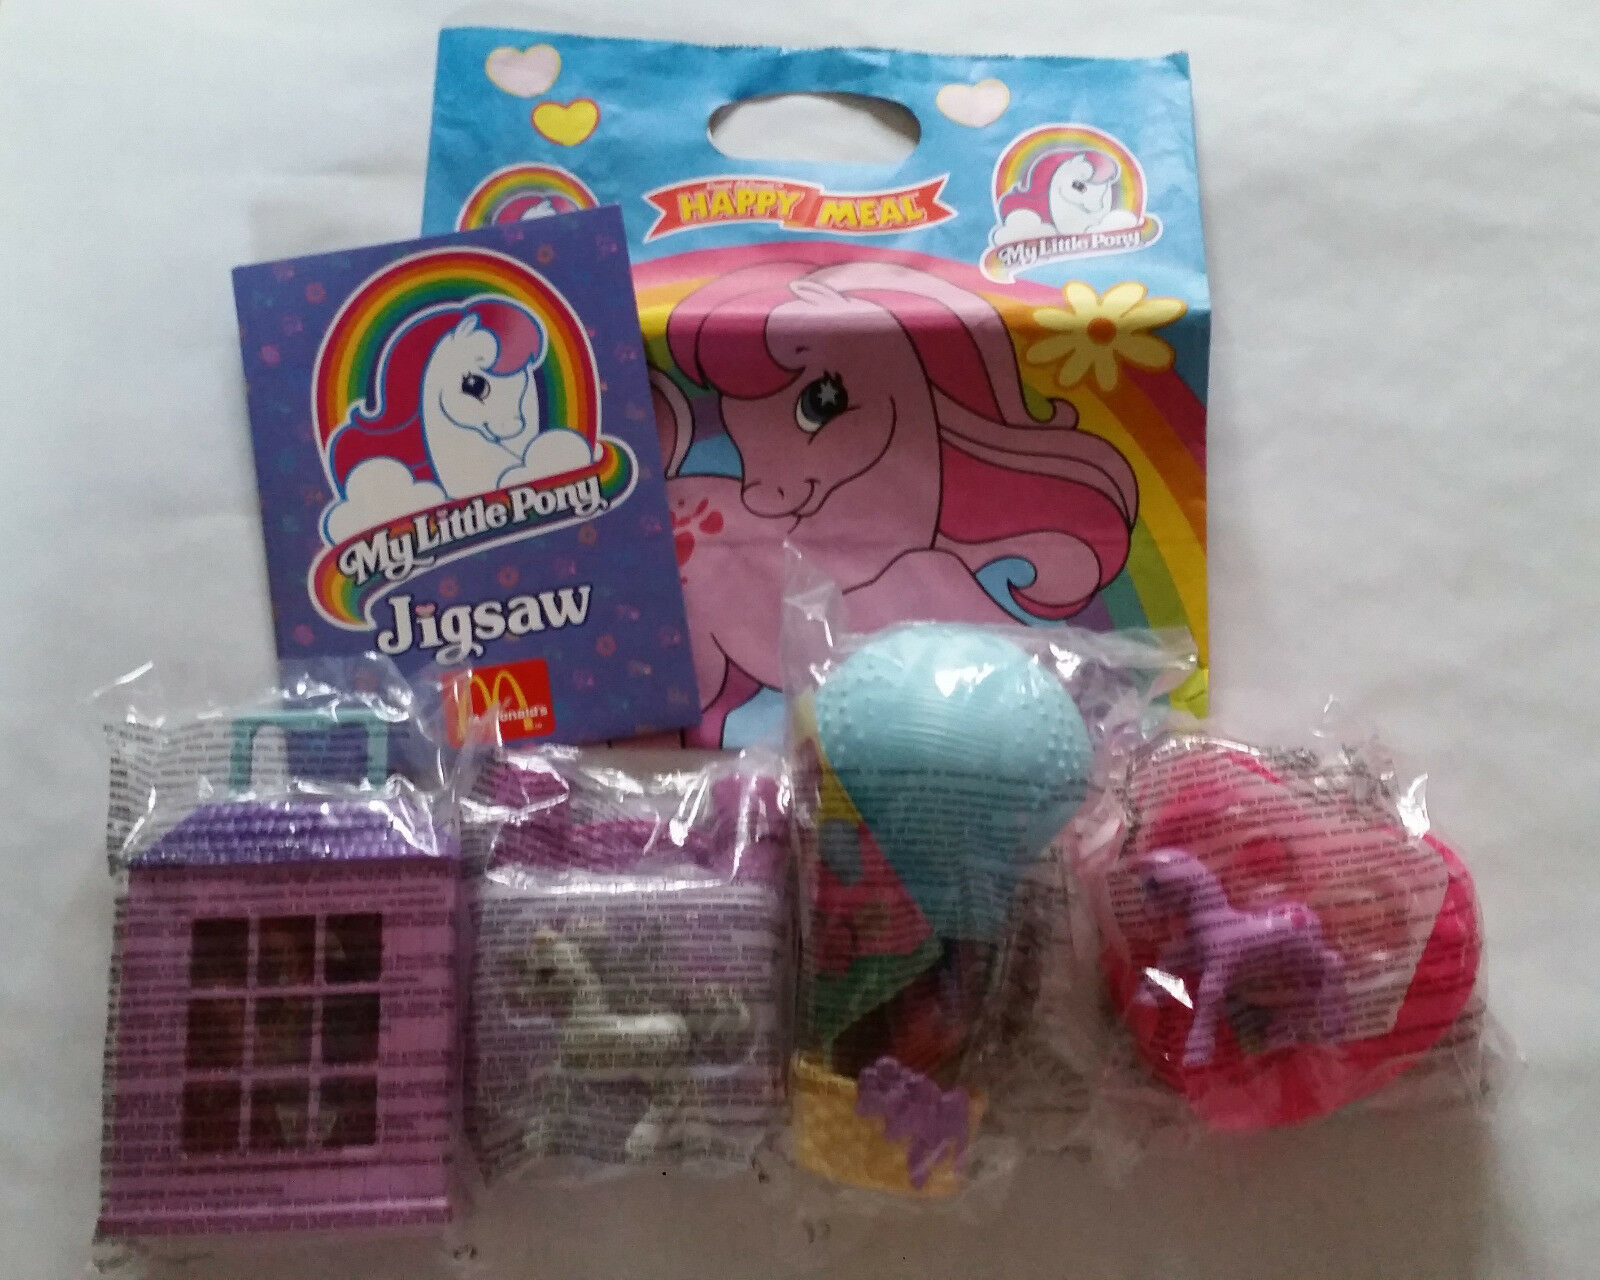 Rare Retro BNIP McDonalds Happy Meal Toy 1999 MY LITTLE PONY Jigsaw G2 Hasbro